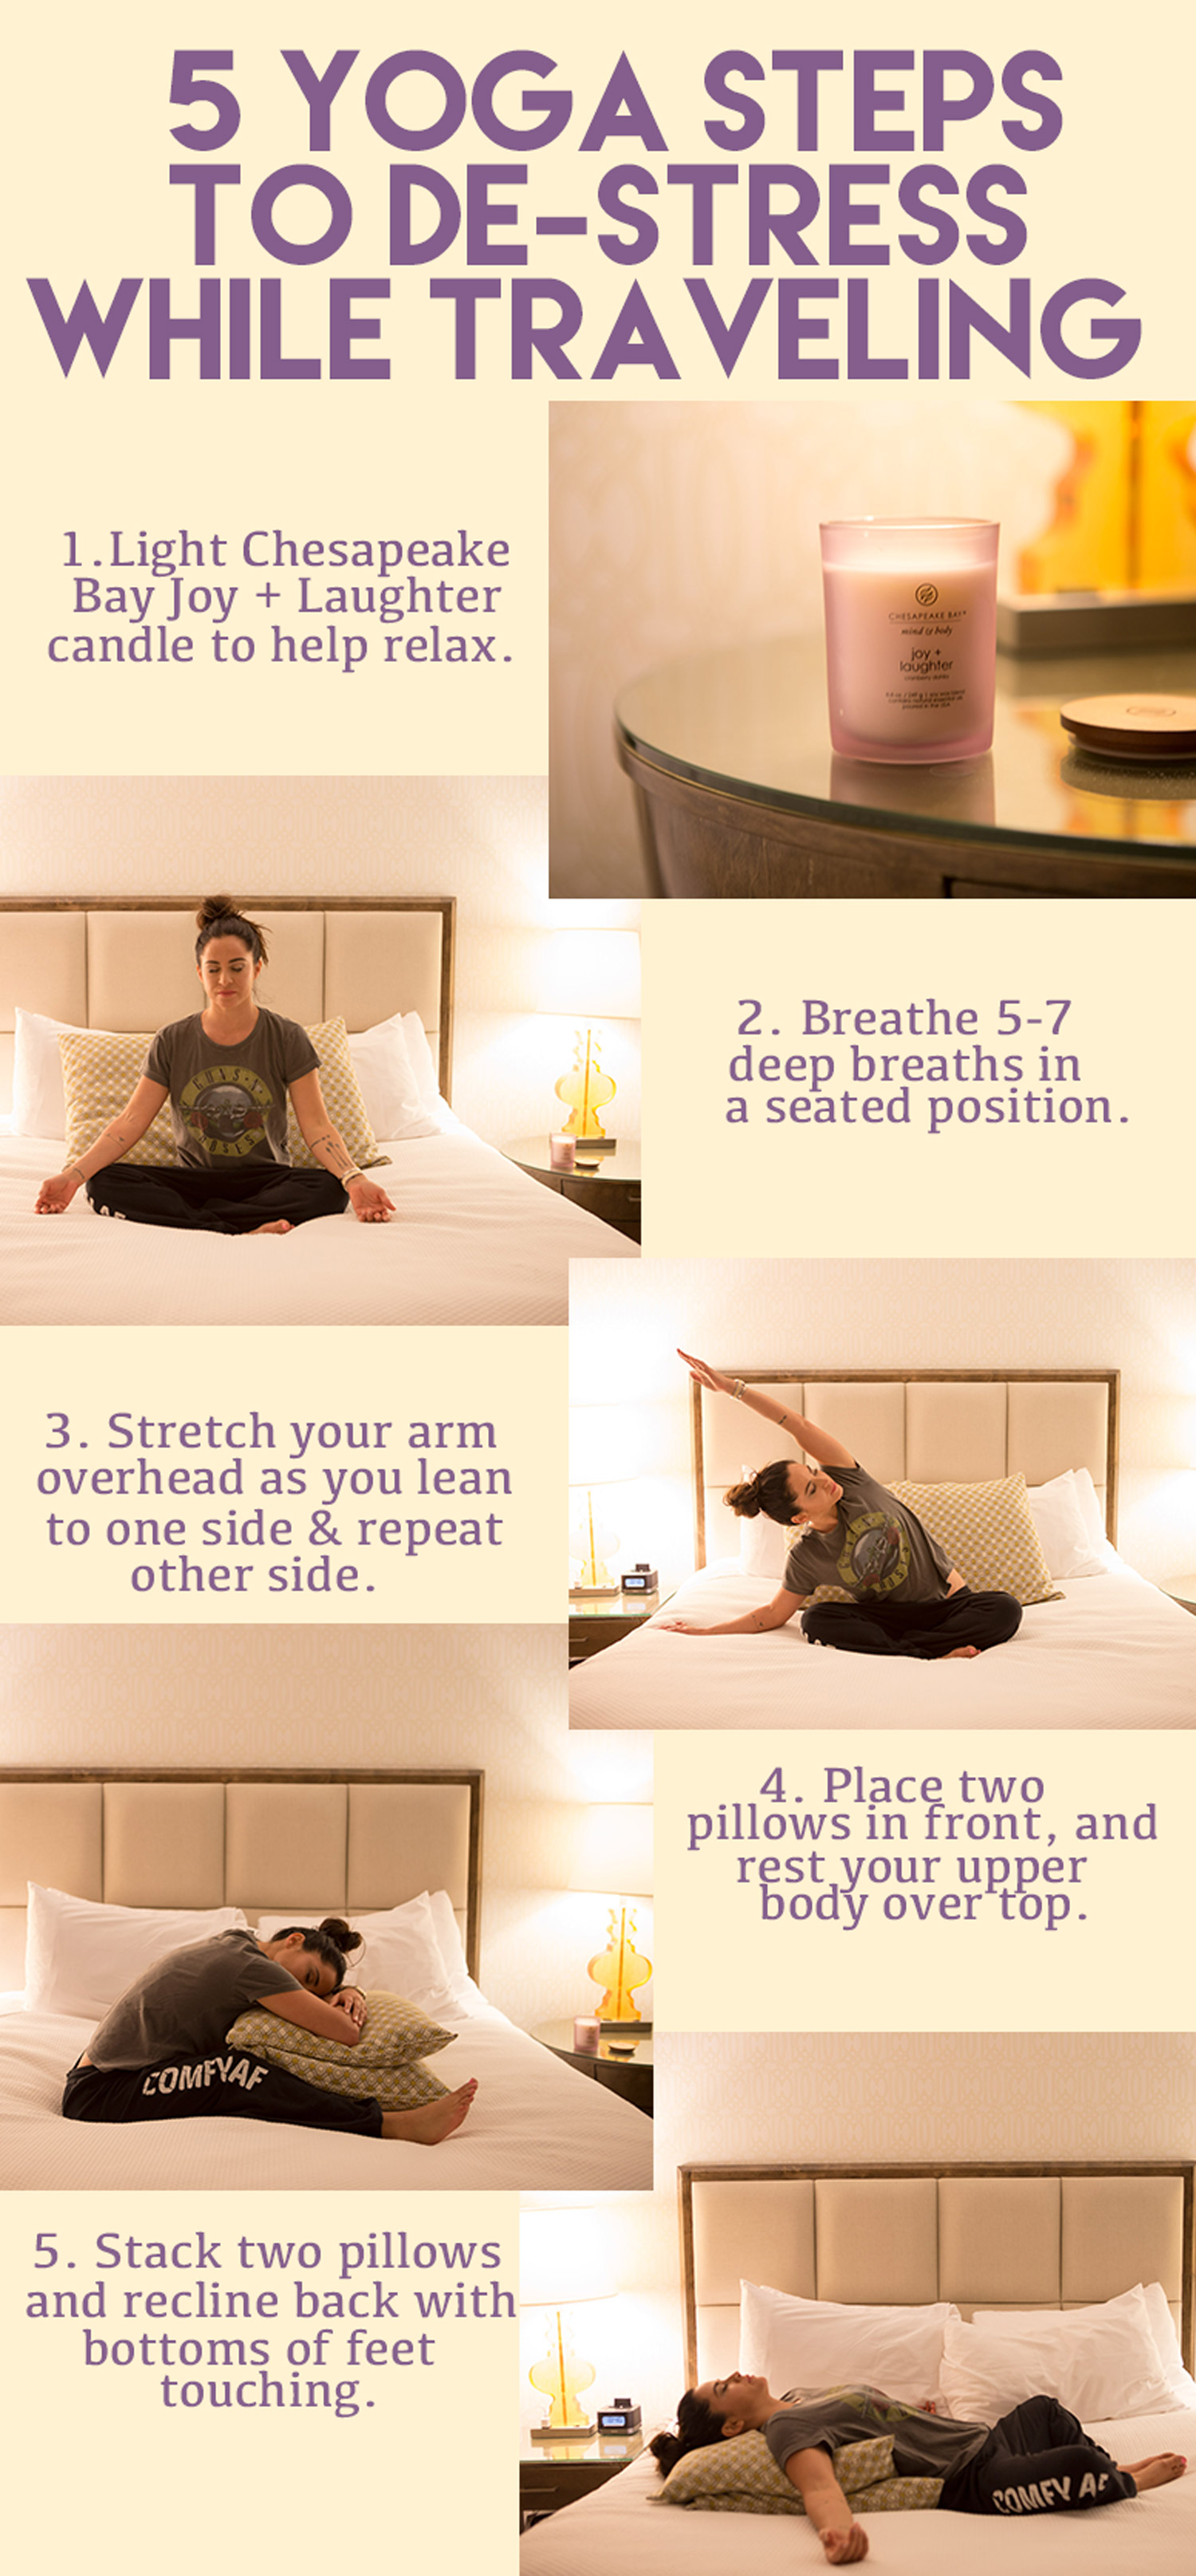 yoga-to-destress-while-traveling